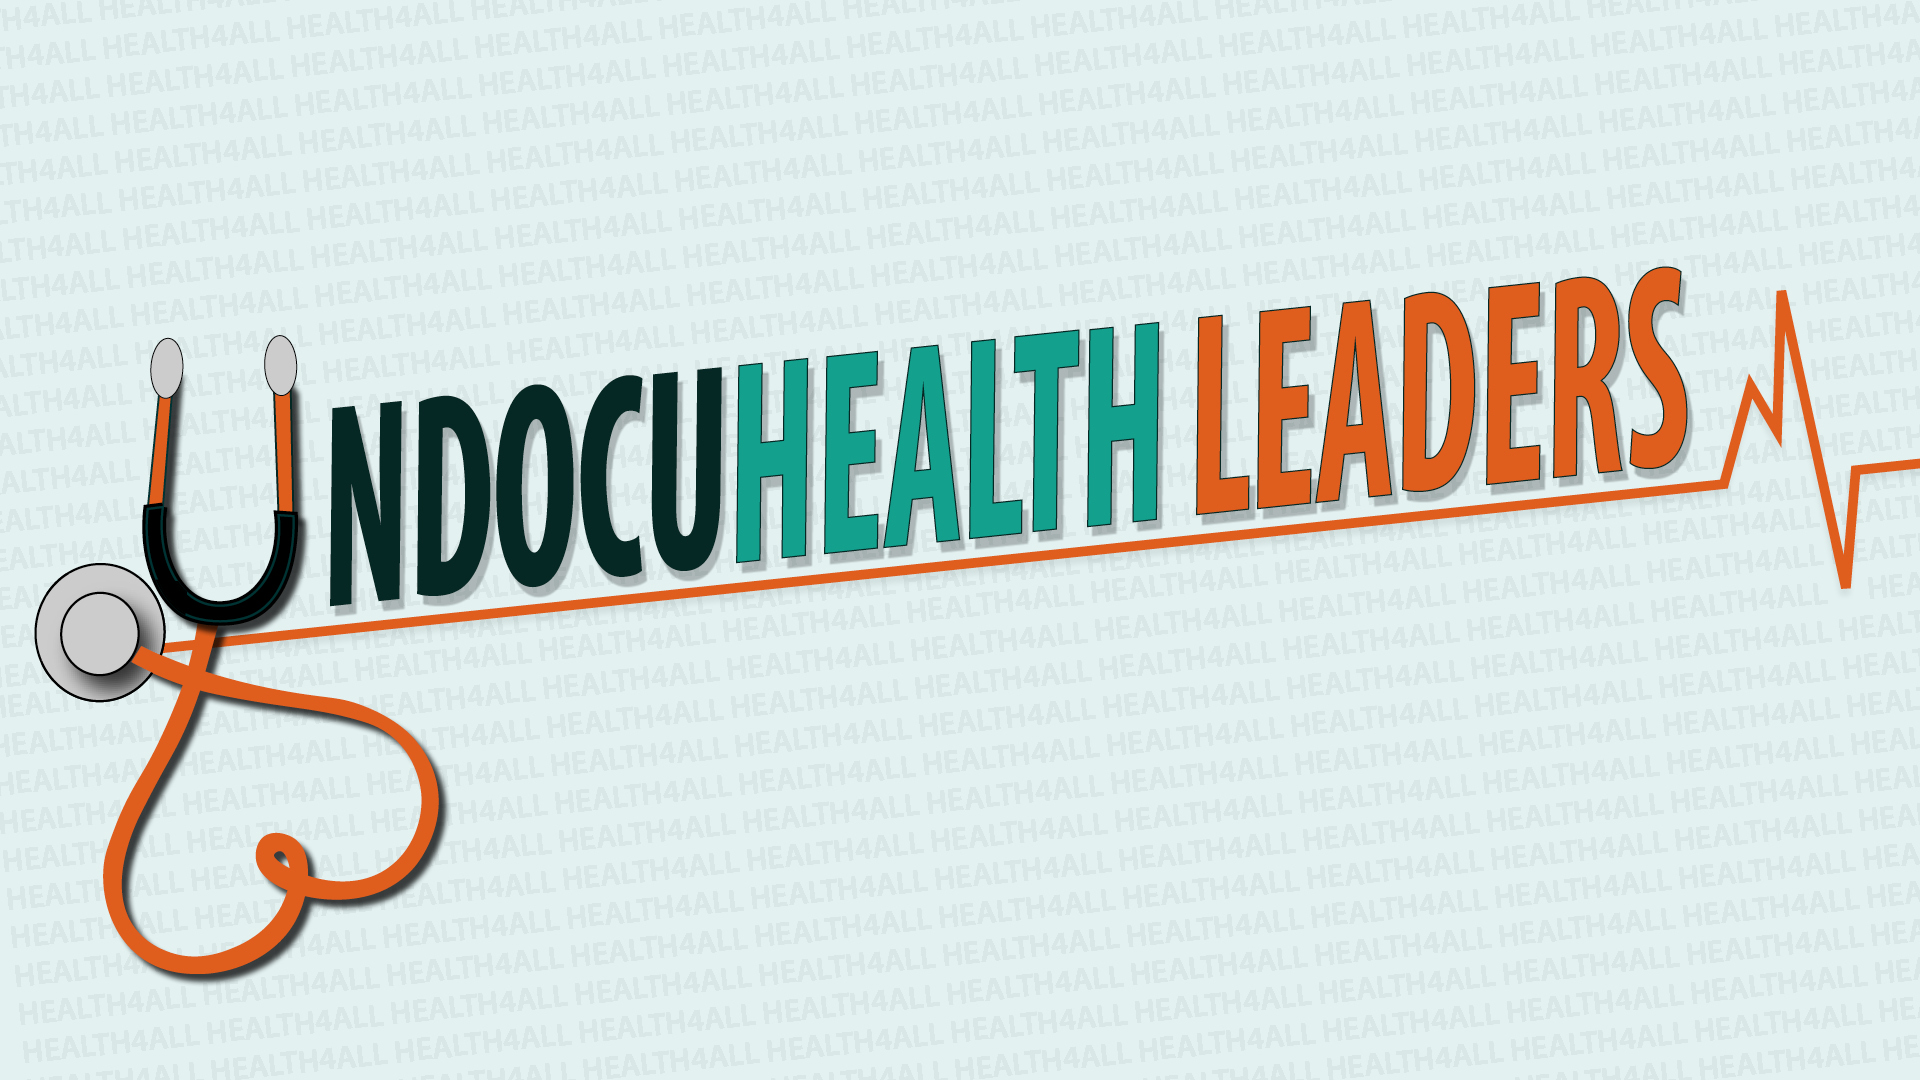 Statement From The UndocuHealth Leaders Immigrant Coalition